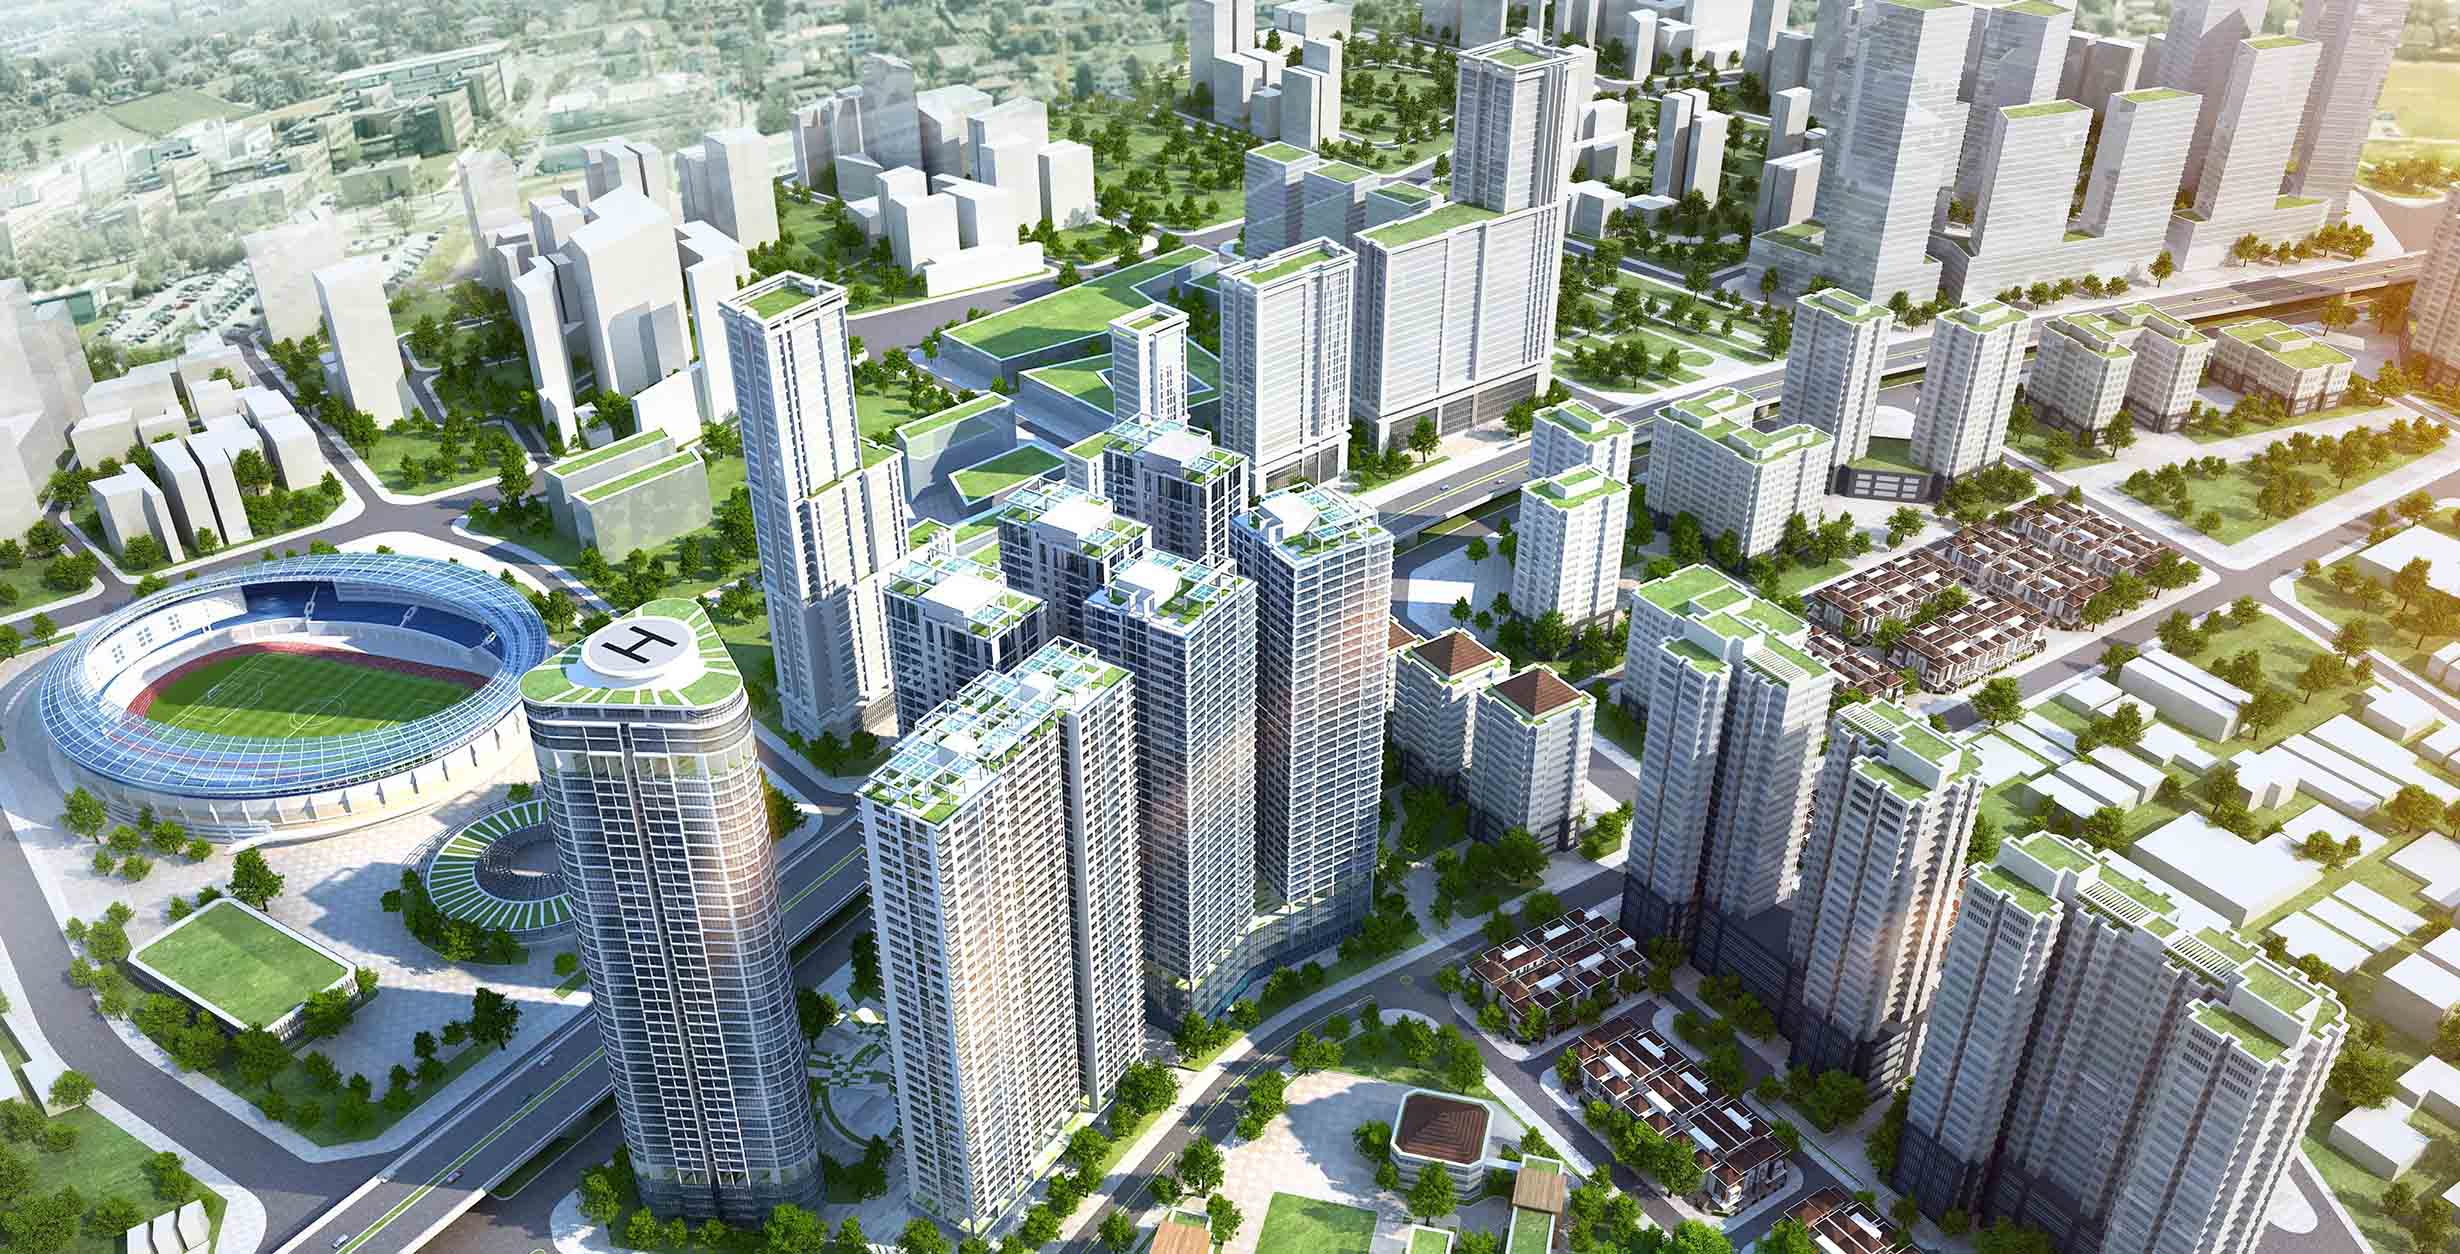 Real Estate in Vietnam: Five Ho Chi Minh City Real Estate Developments to Watch